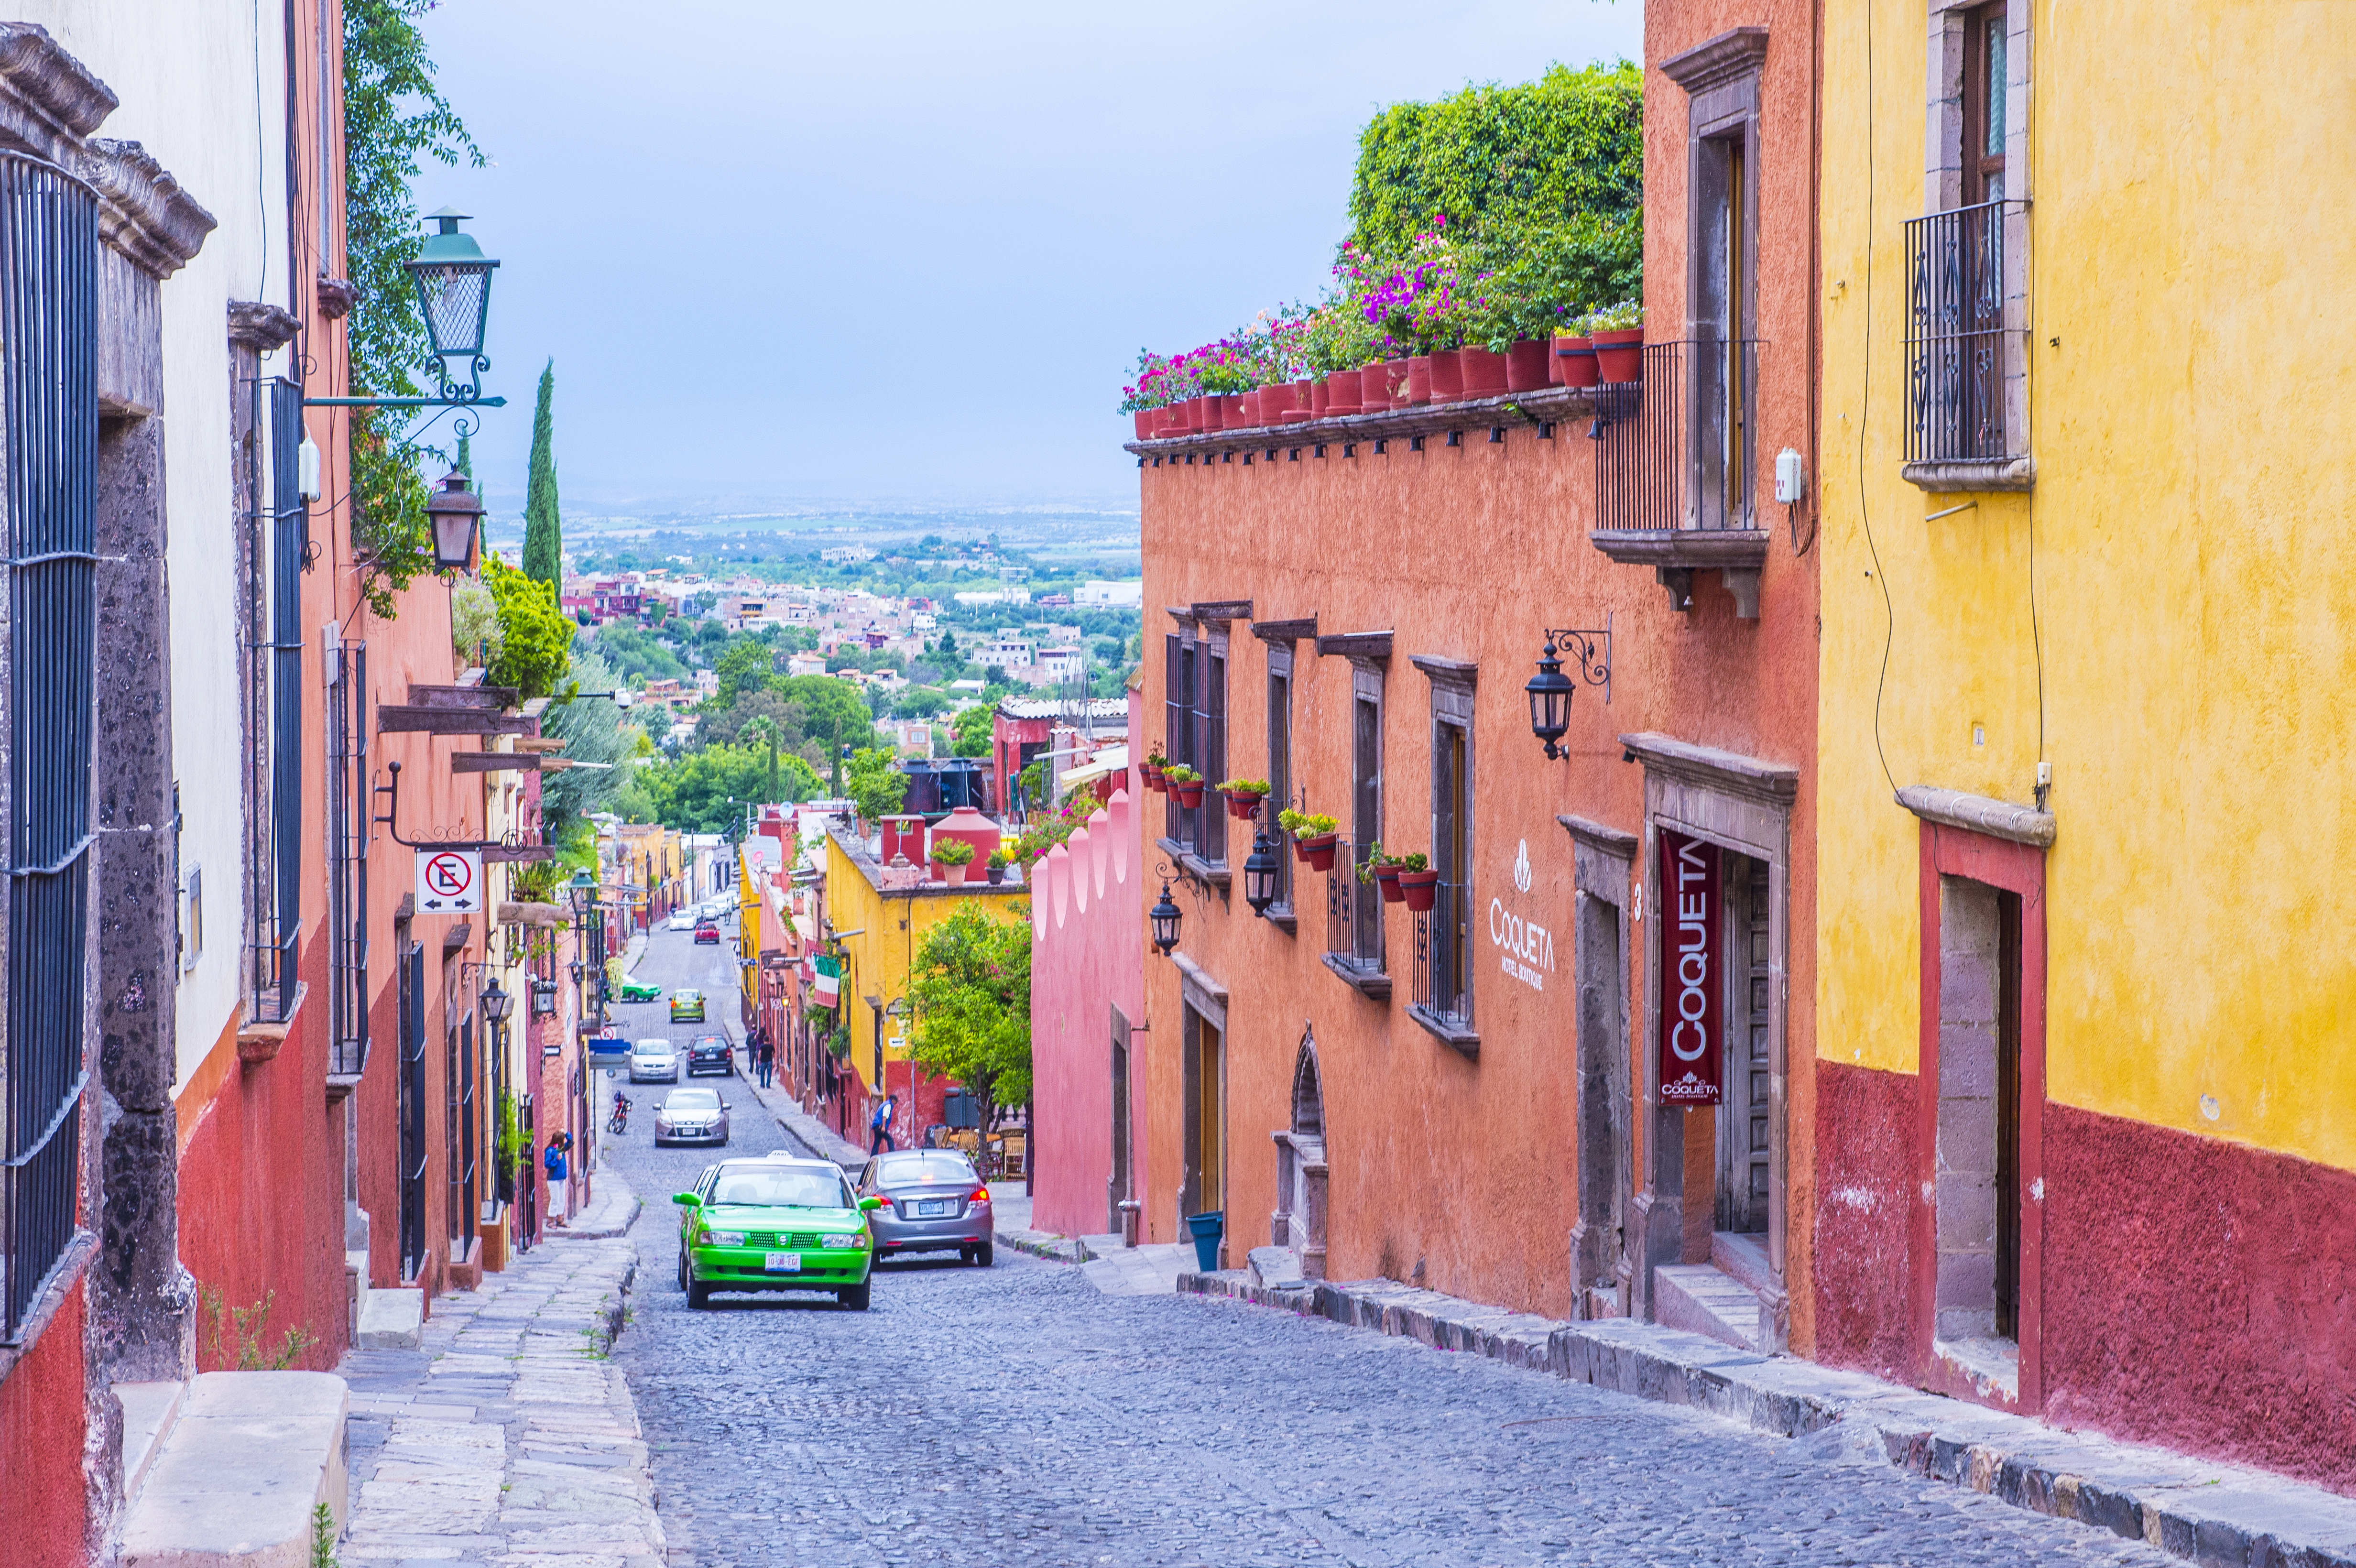 Street view in San Miguel de Allende,Mexicok. The historic city San Miguel de Allende is UNESCO World Heritage Site since 2008.